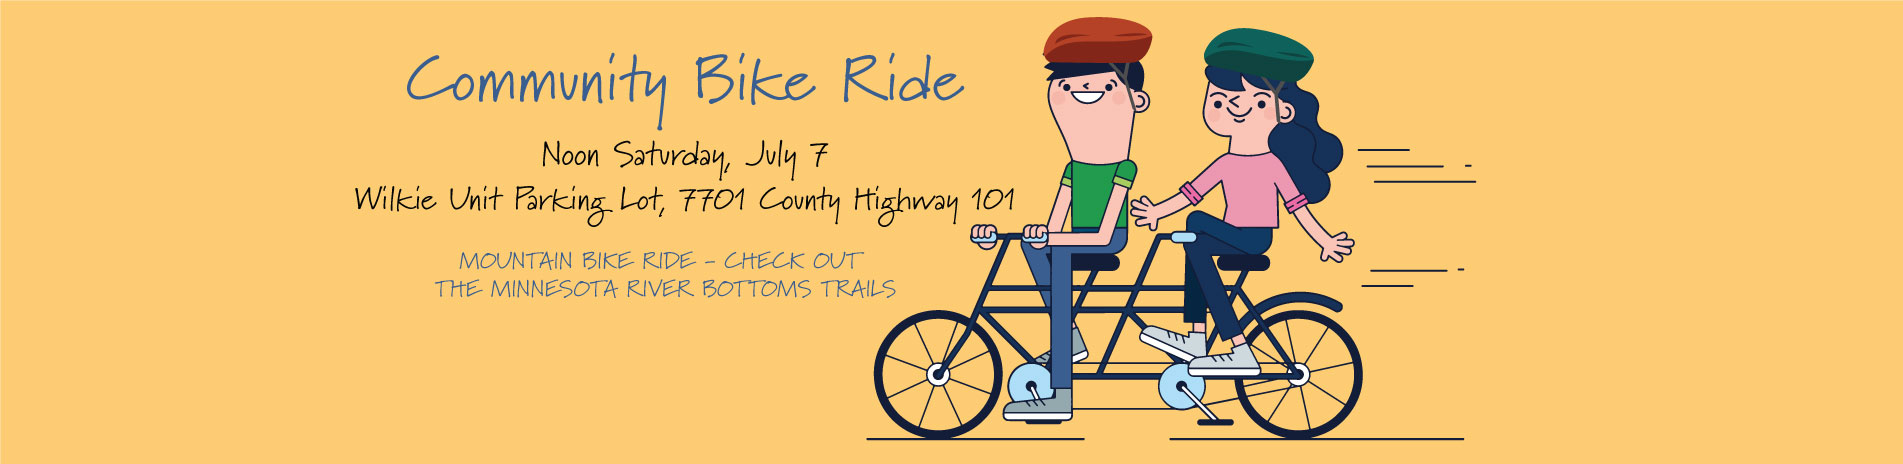 Community Bike Ride Poster showing cartoon drawing of two people riding a bike